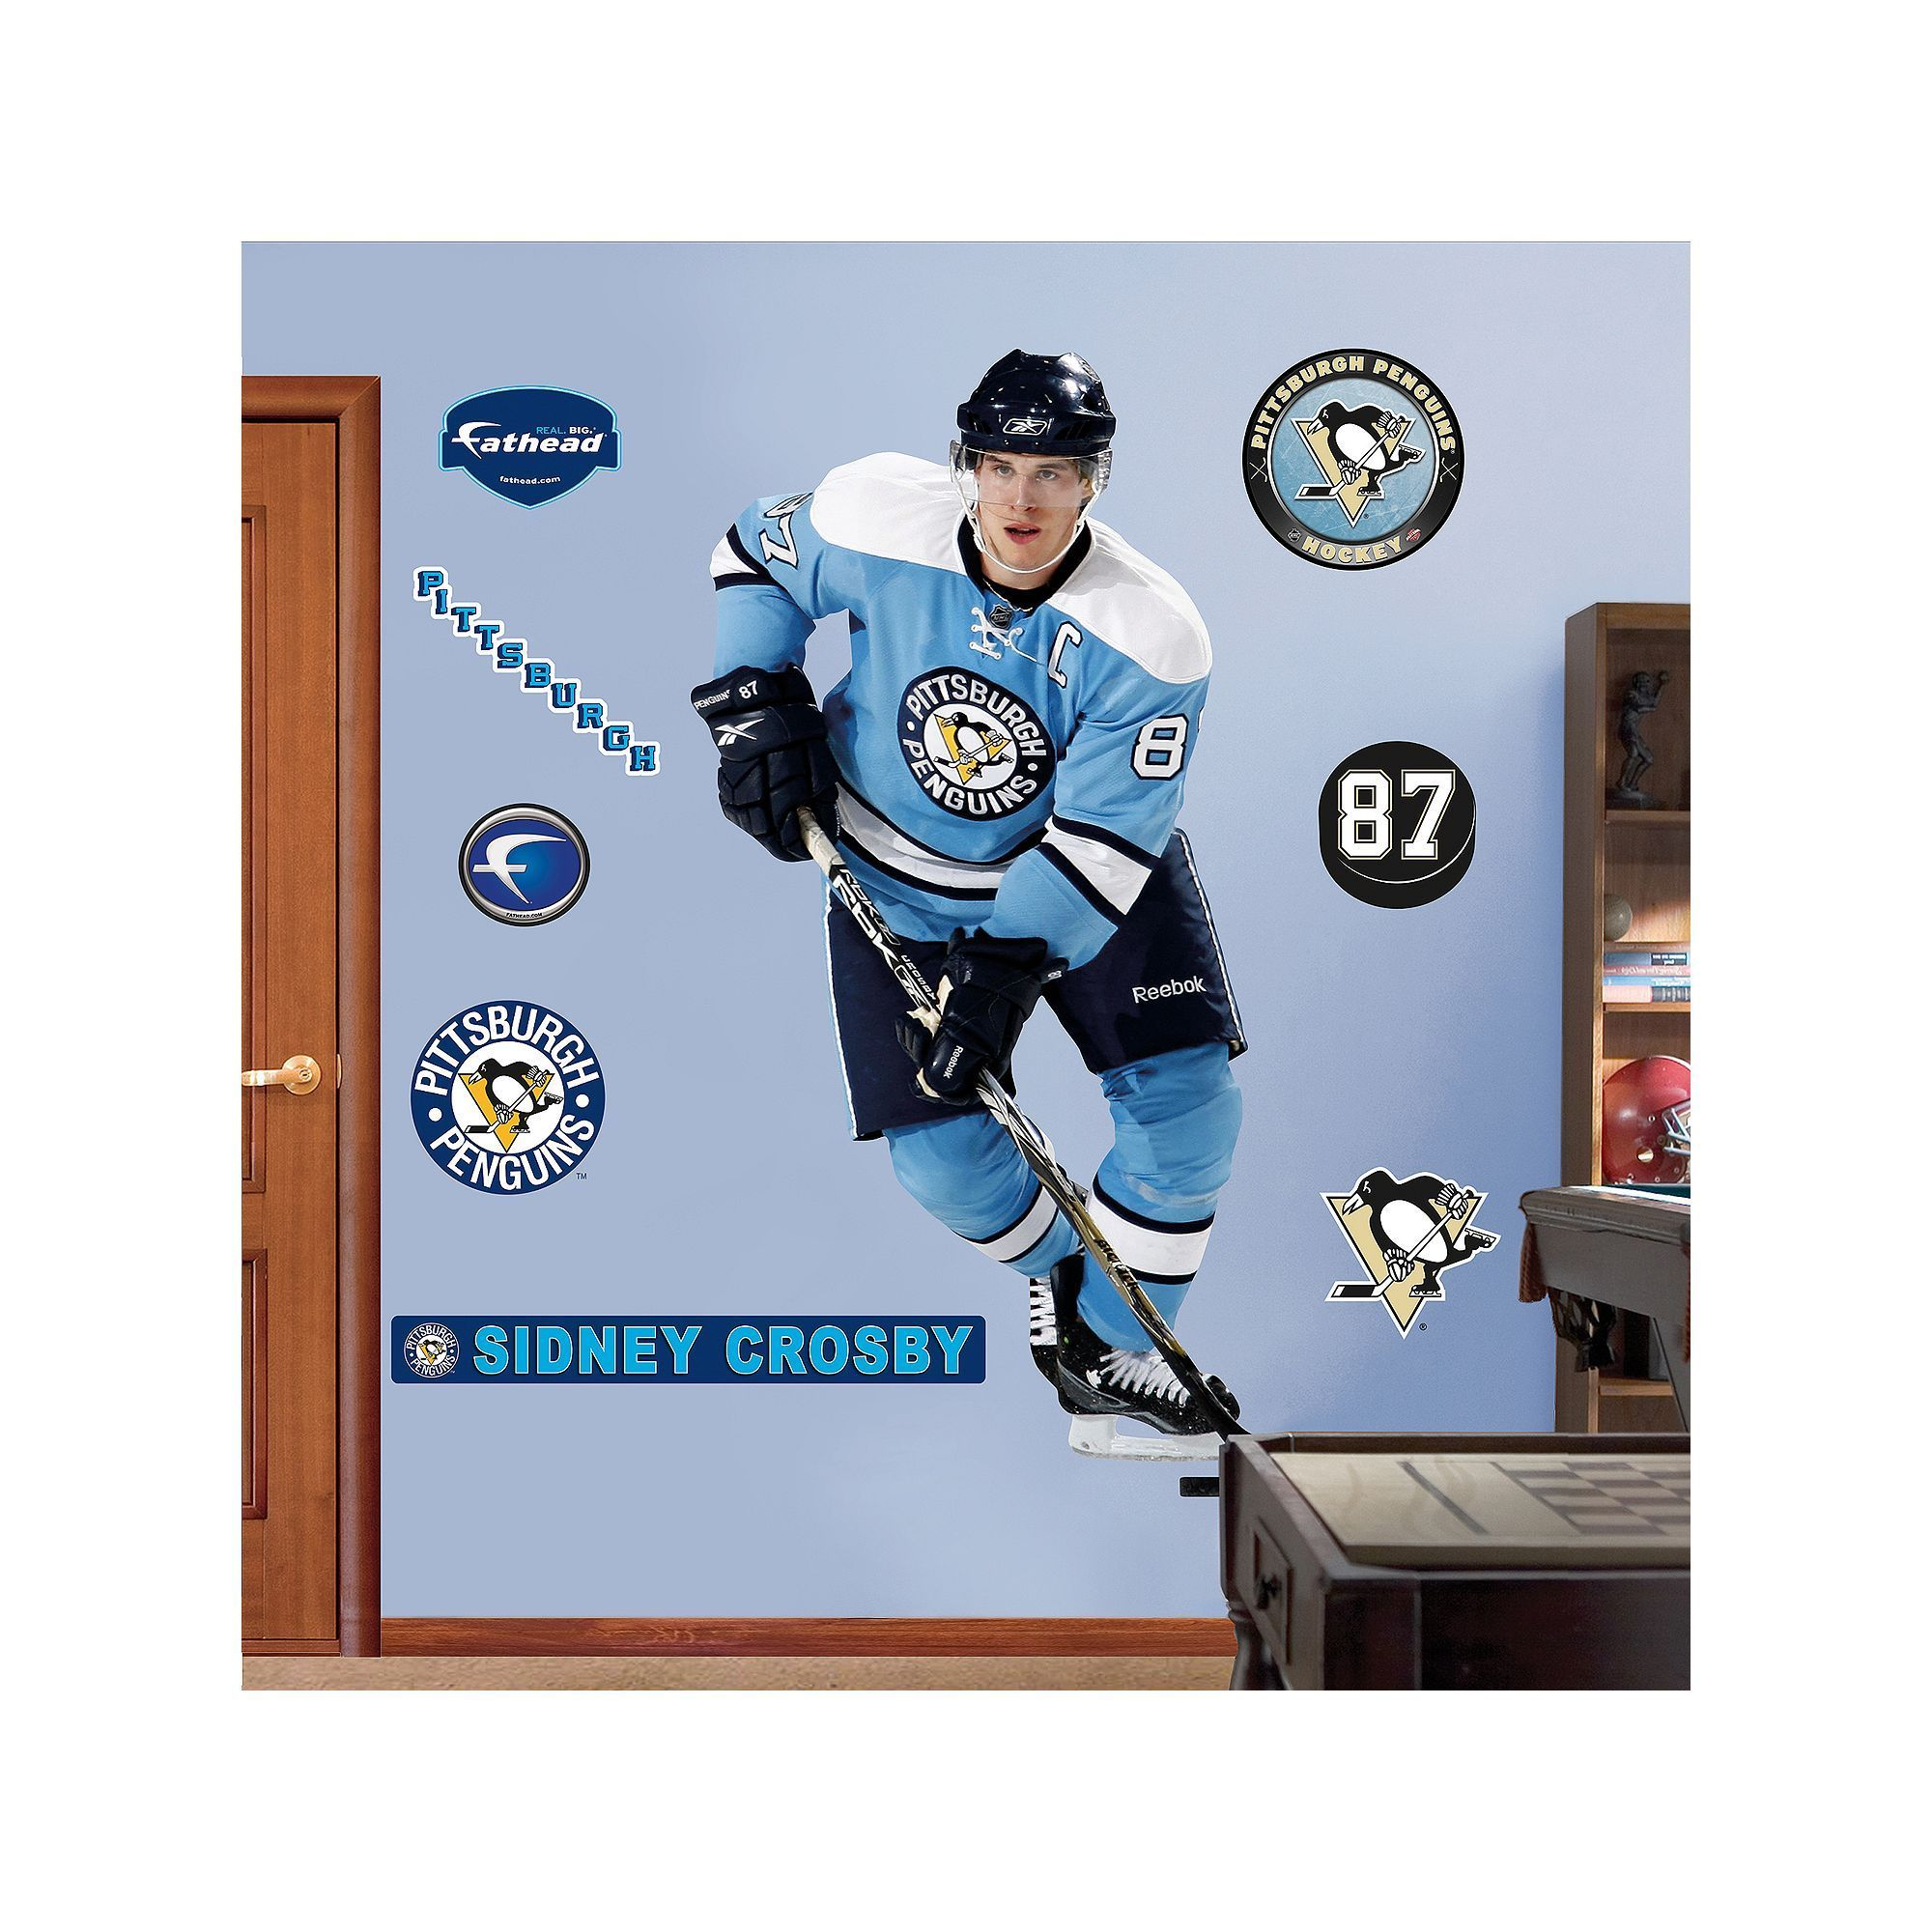 Fathead Pittsburgh Penguins Sidney Crosby Retro Wall Decal Multicolor Durable  sc 1 st  Pinterest & Fathead Pittsburgh Penguins Sidney Crosby Retro Wall Decal ...